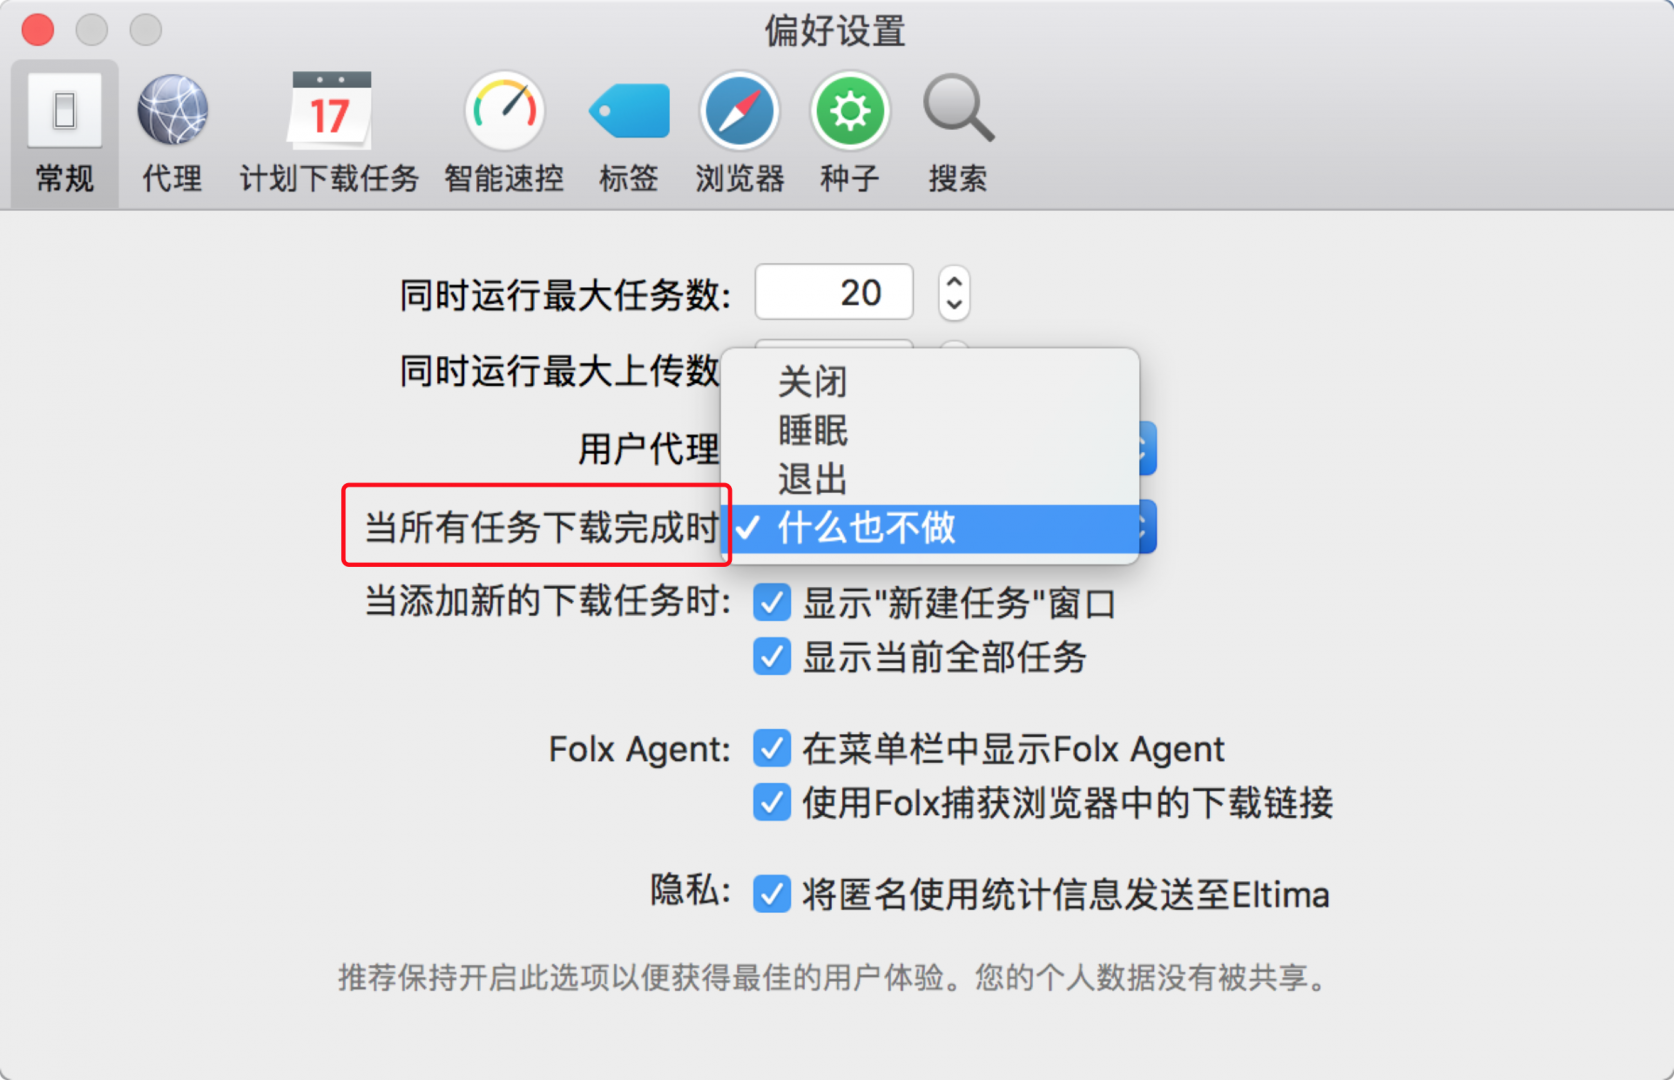 ../Library/Containers/com.tencent.qq/Data/Library/Application%20Support/QQ/Users/2956668087/QQ/Temp.db/599B857B-2049-4667-93E8-604A55976726.png